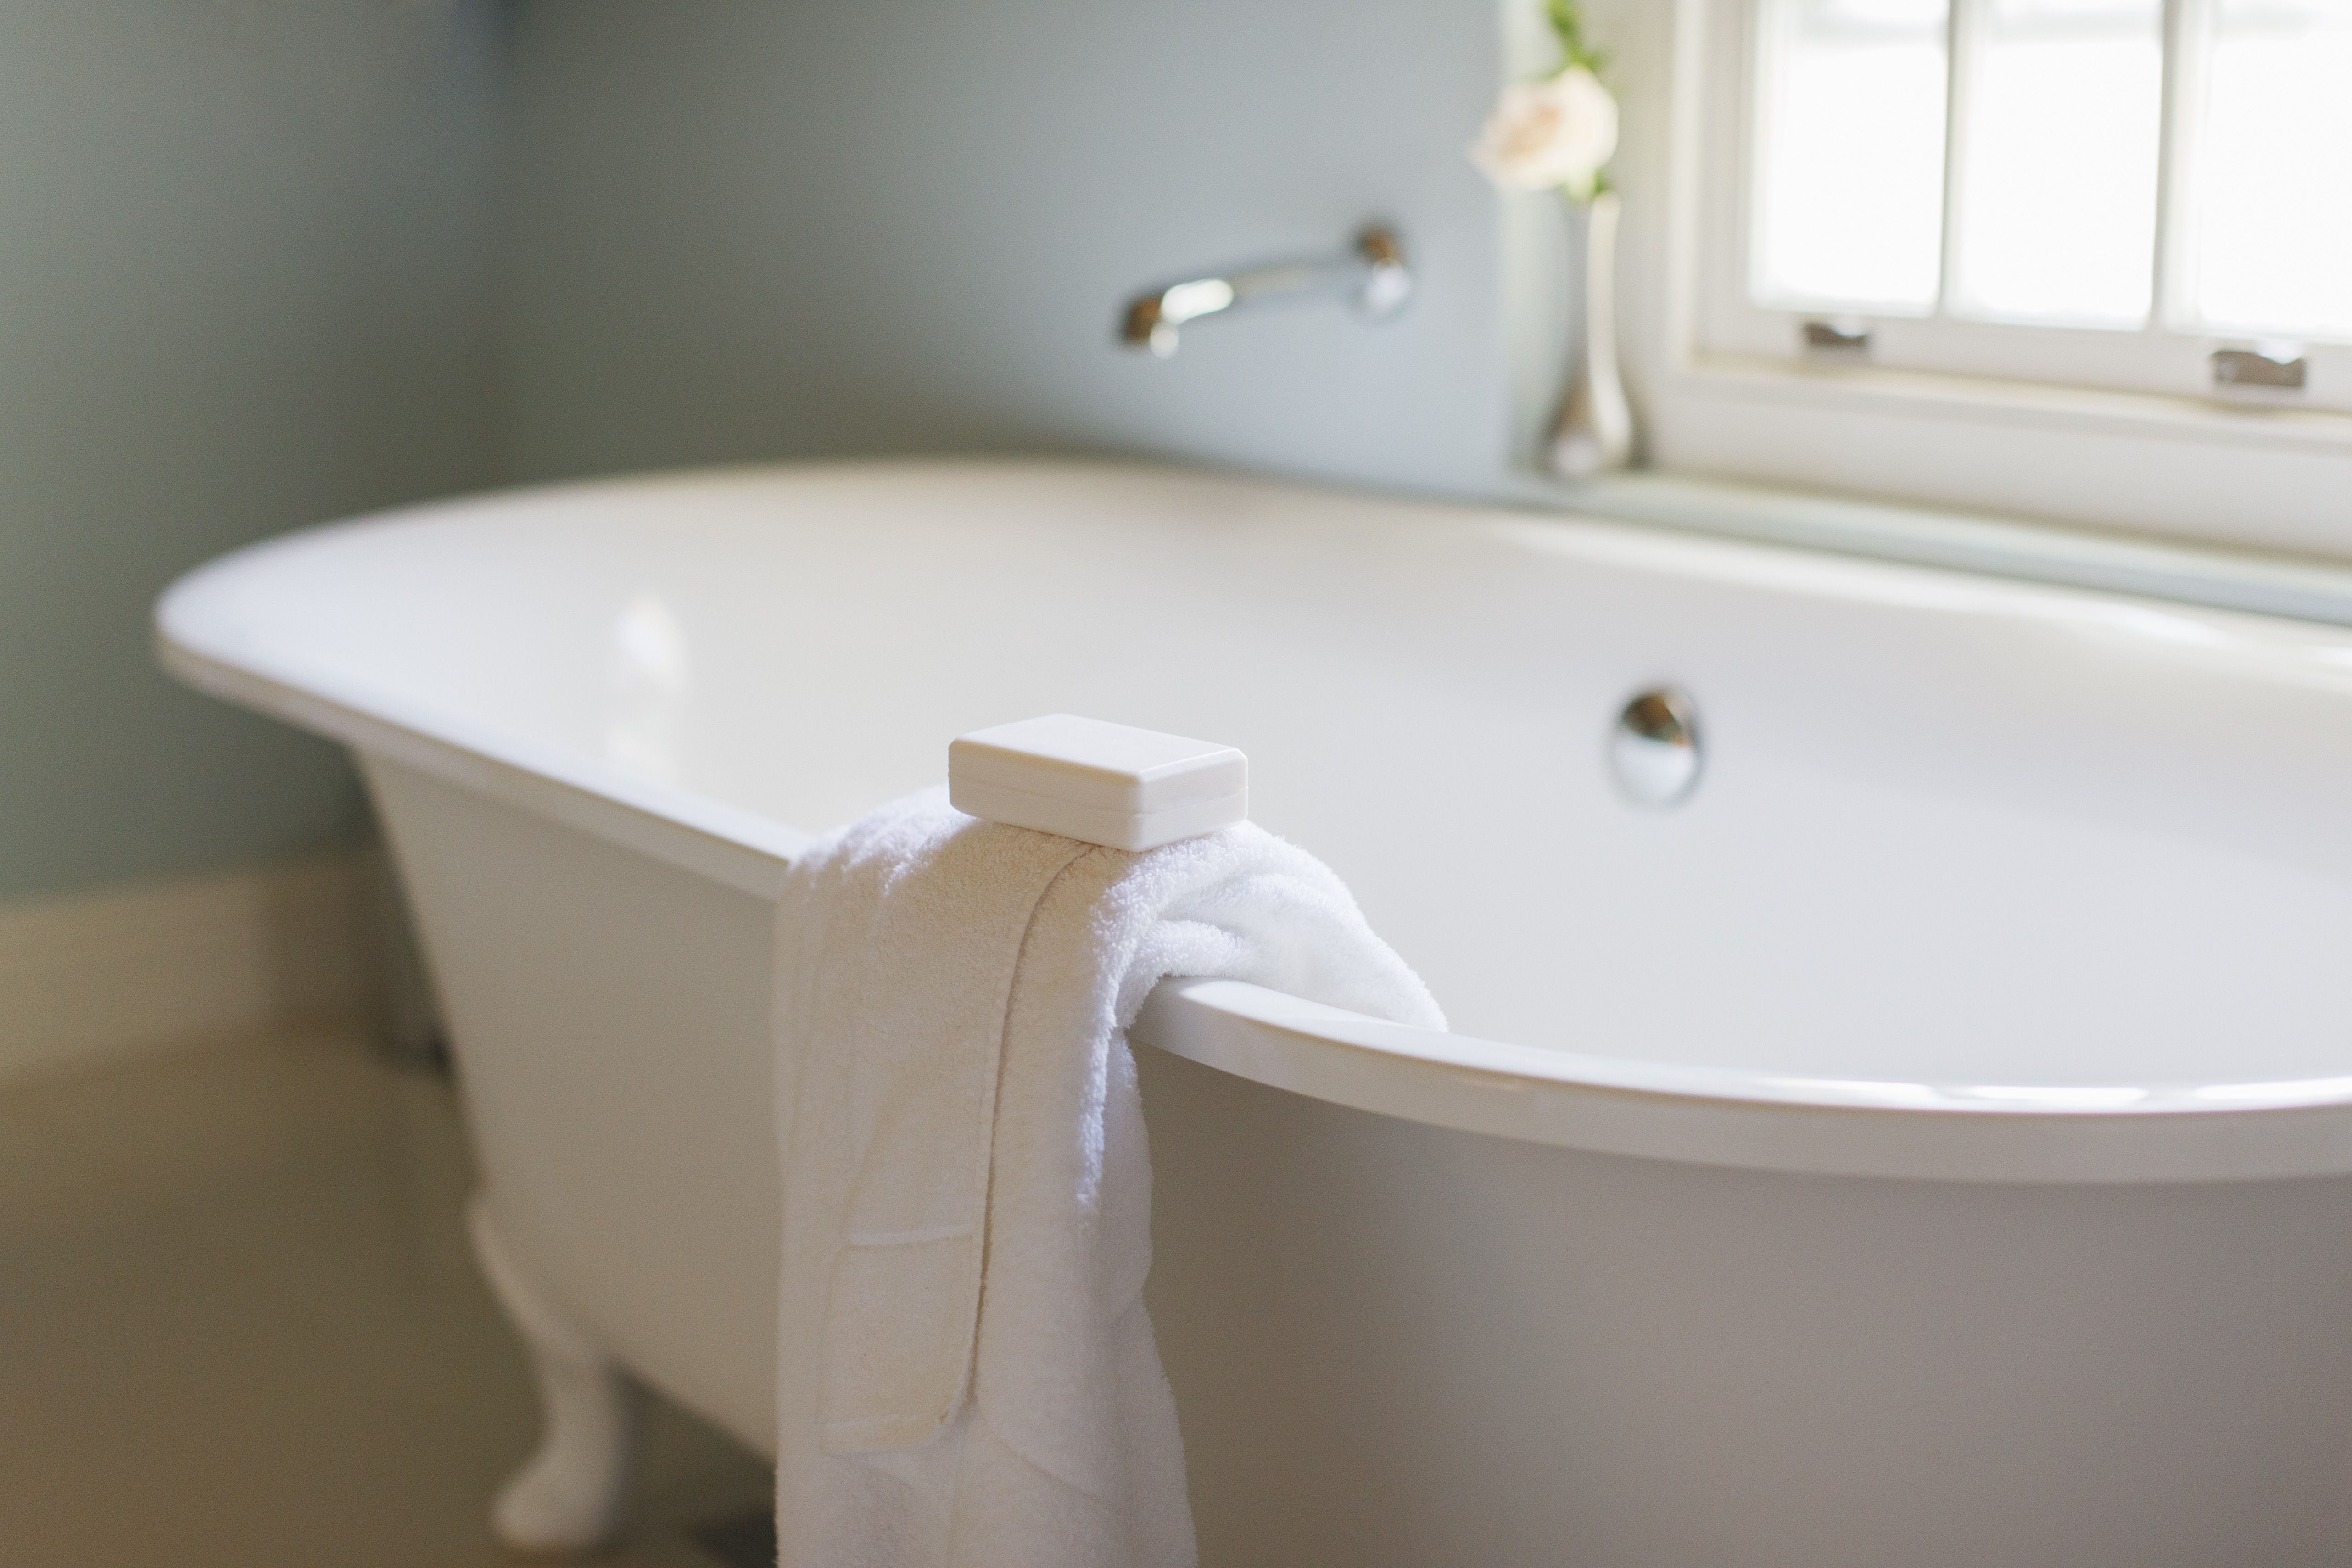 In the bathroom while taking a shower or a well deserved bubble bath - In The Bathroom While Taking A Shower Or A Well Deserved Bubble Bath 29